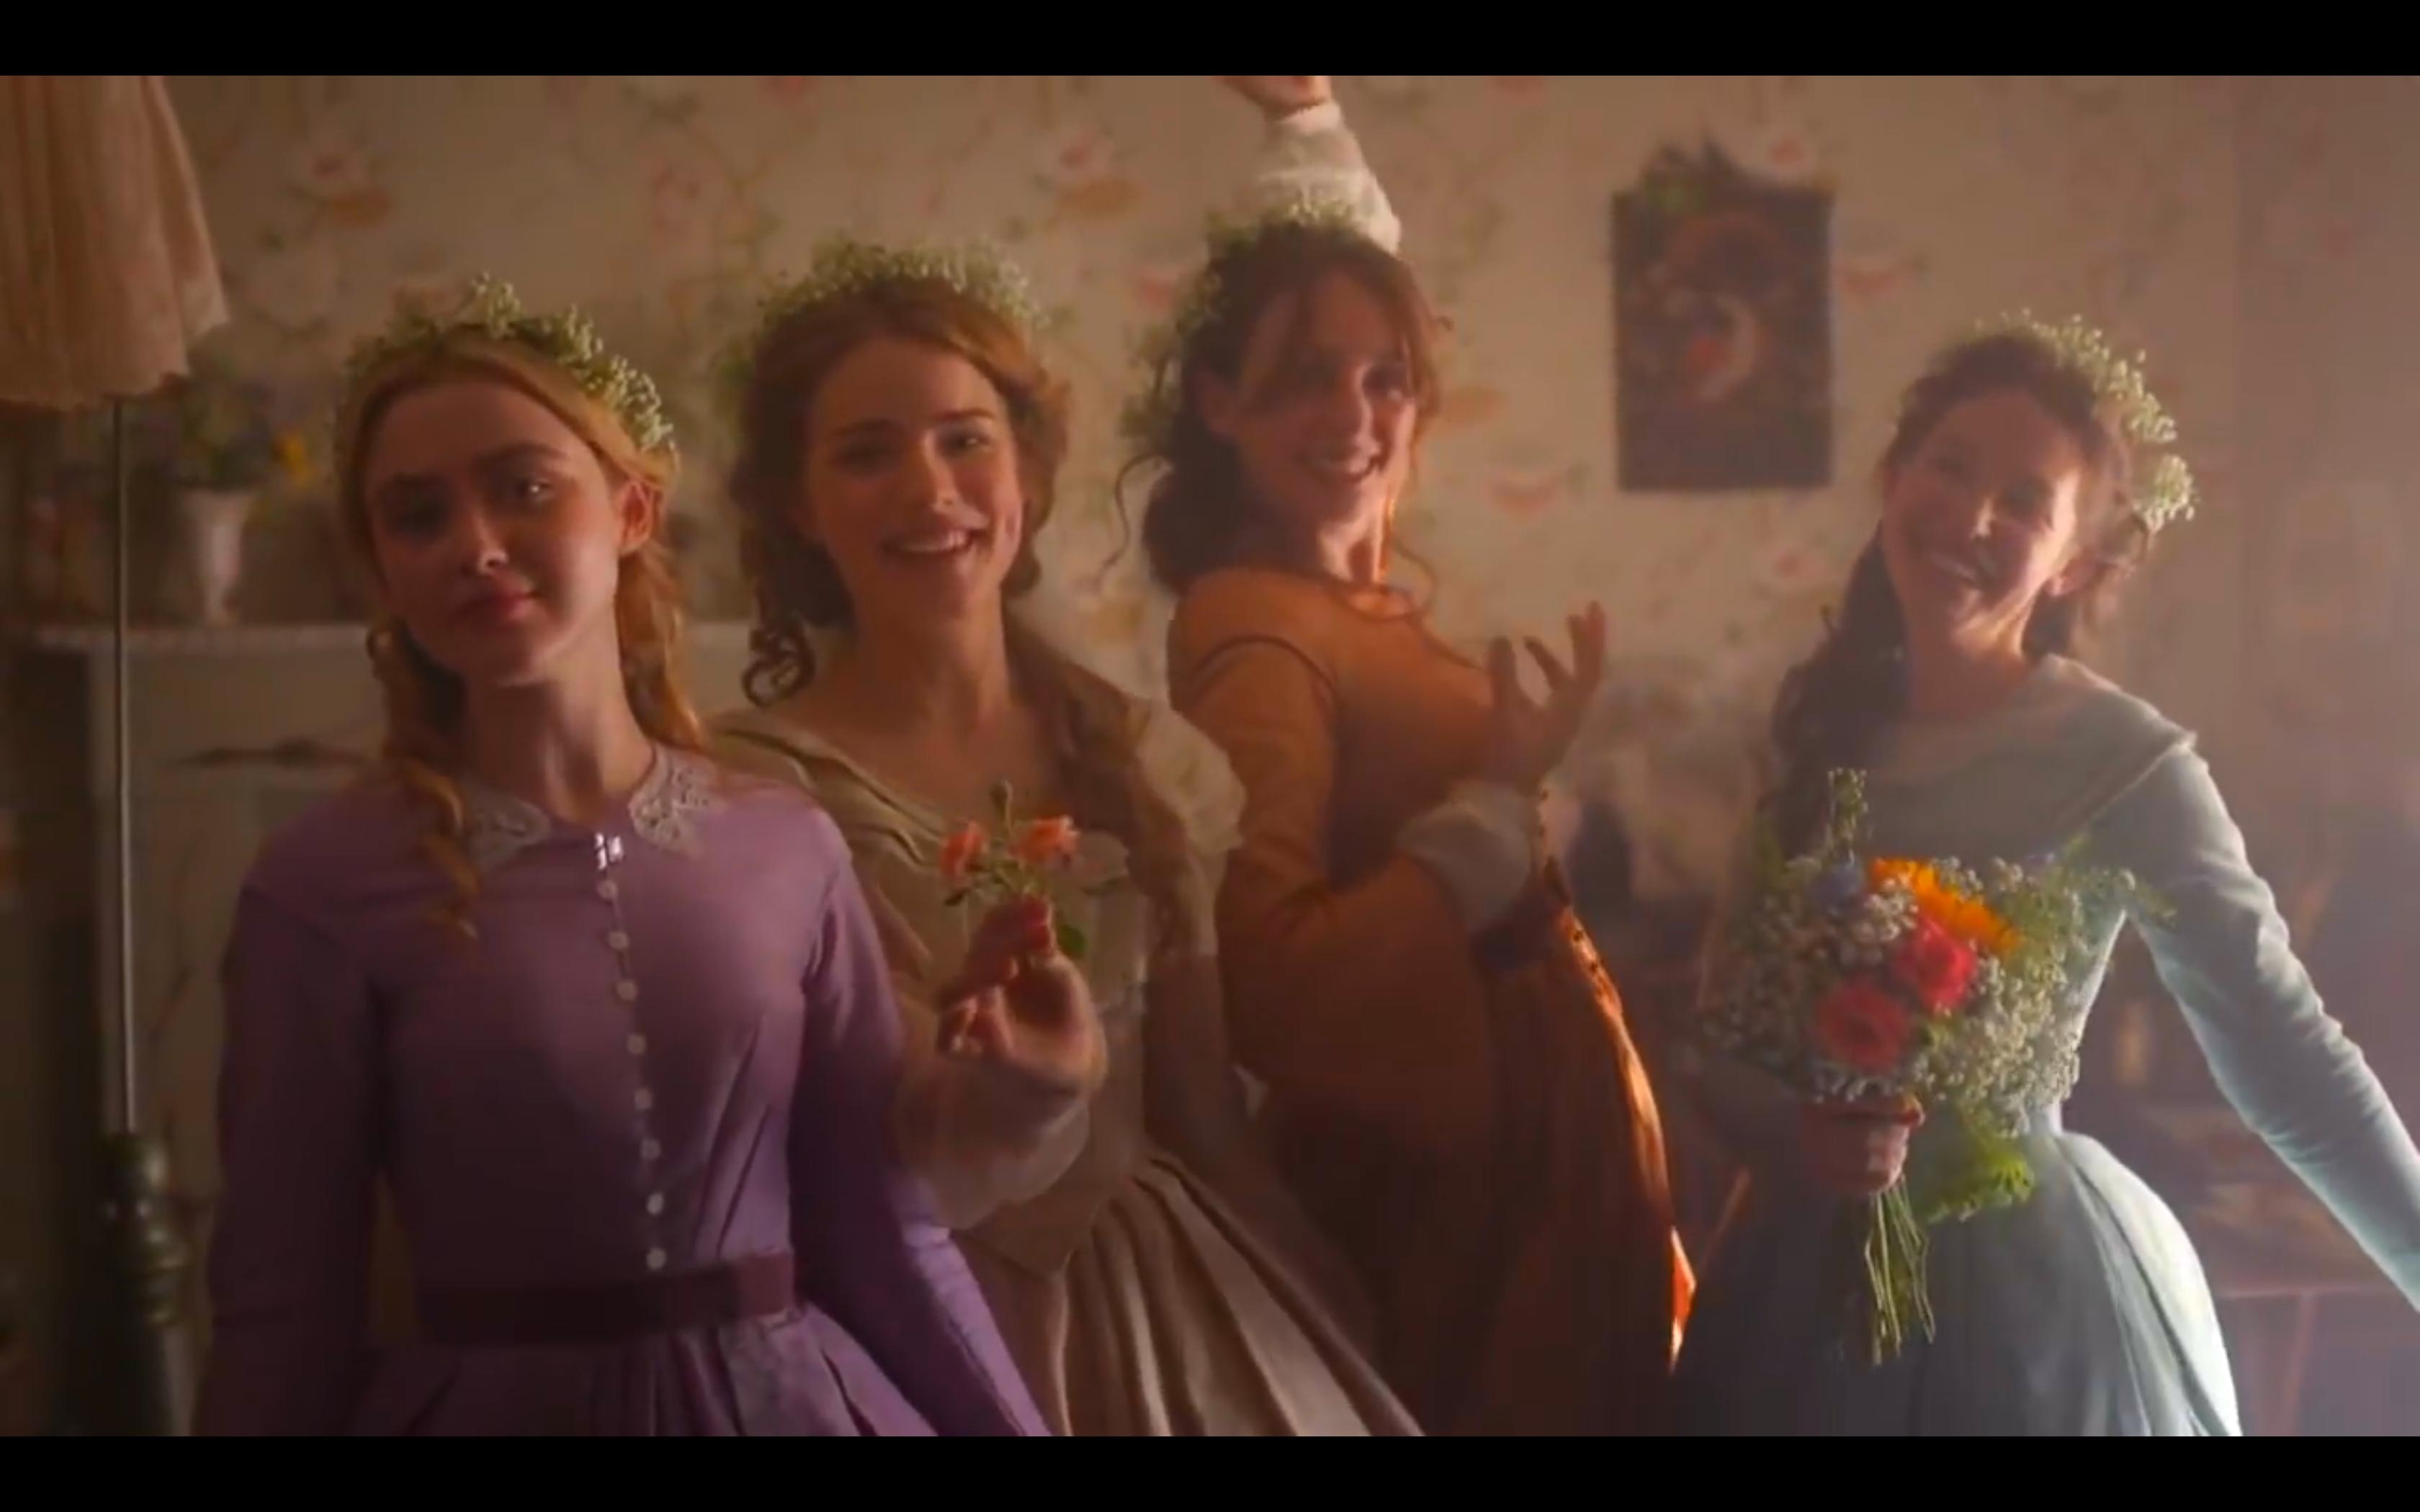 Kathryn Newton, Maya Hawke, Willa Fitzgerald, and Annes Elwy in Little Women (2017)